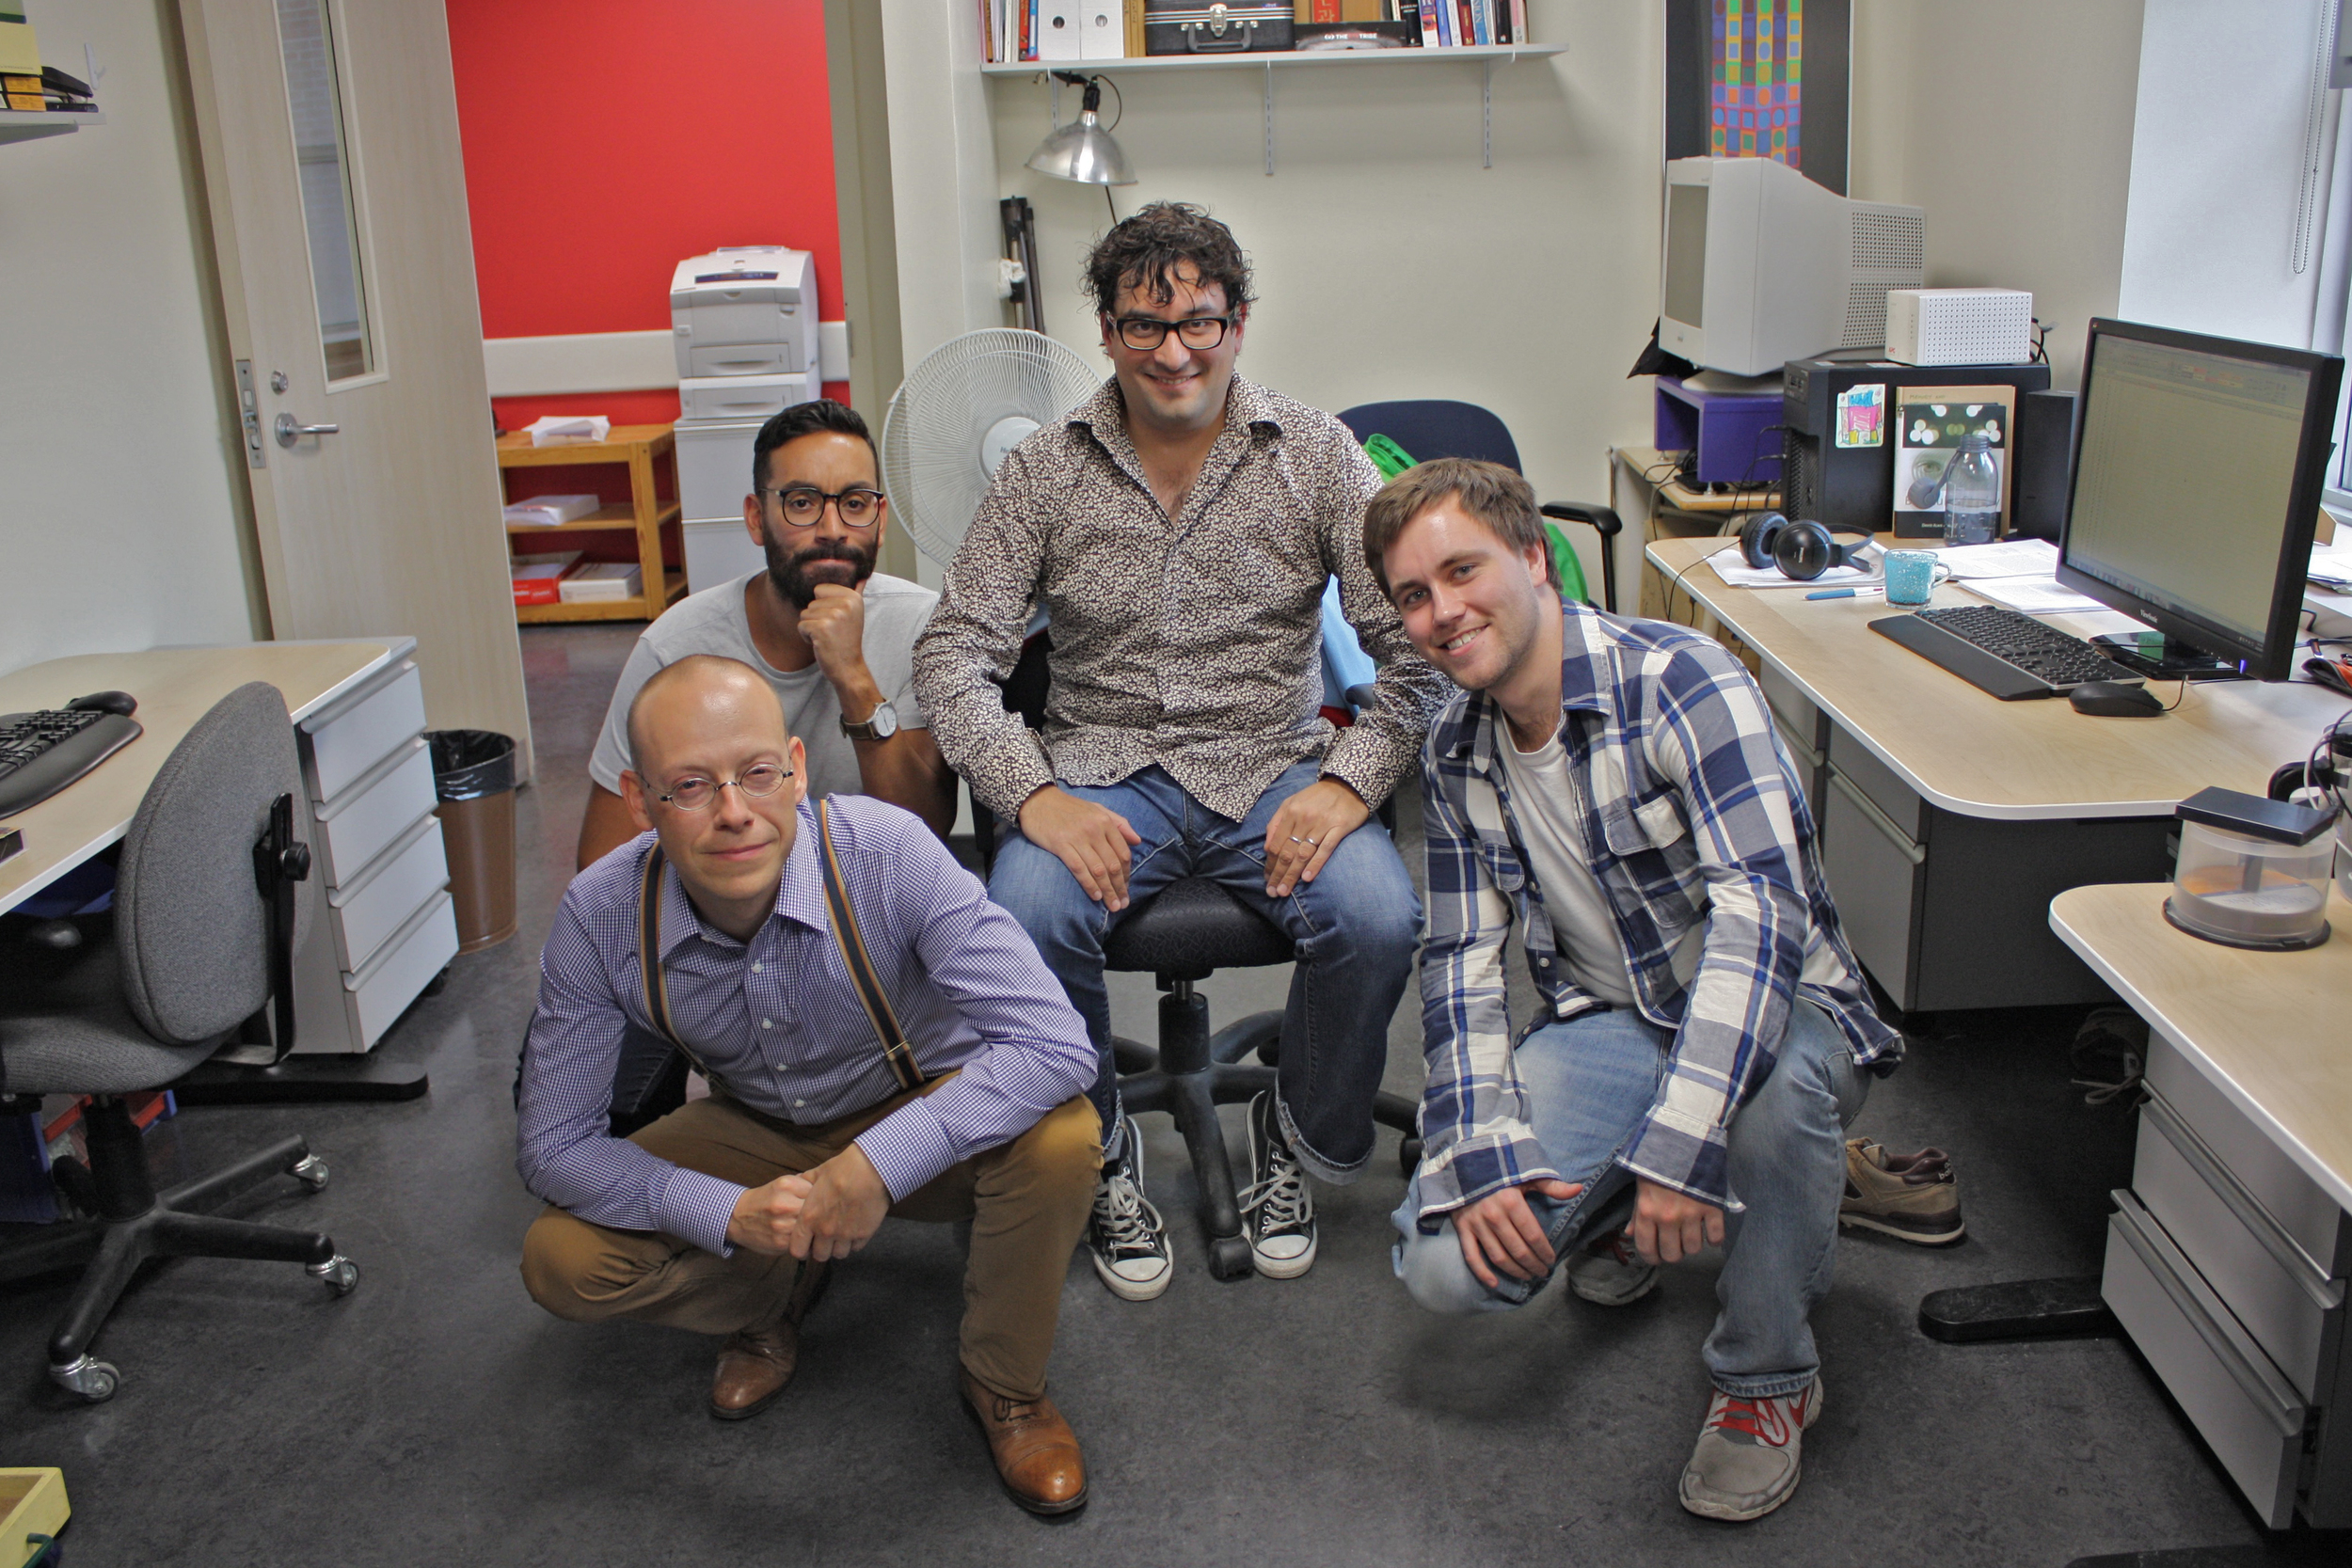 Left to right: Gunnar Schmidtmann, Marouane Ouhnana, Ben Jennings, Stephen Beukema